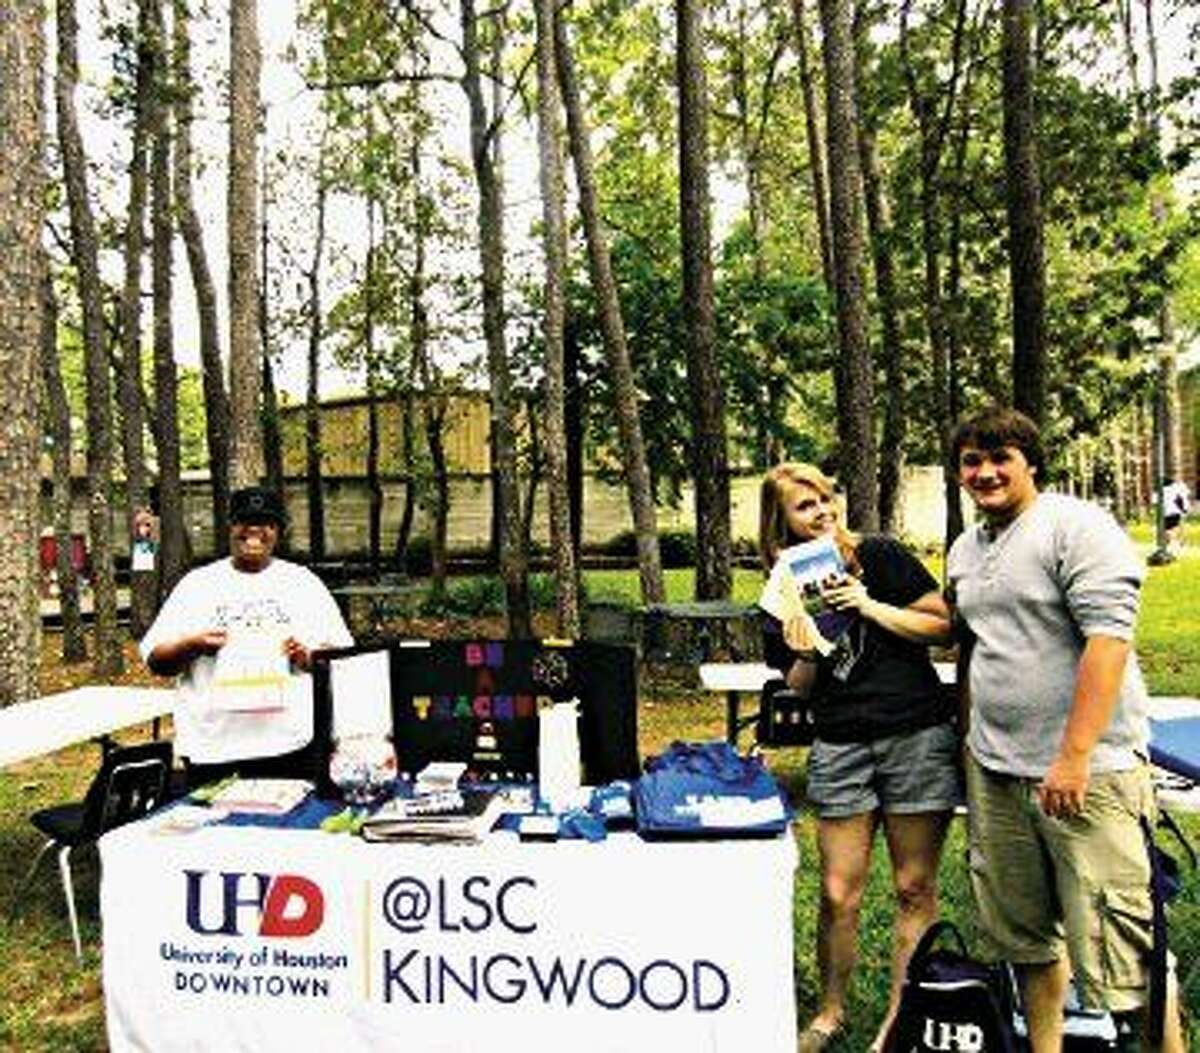 LSC-Kingwood and UHD will have a joint information session on Wednesday, March 4 from 5-7 p.m. For more information, call 281-312-1733.